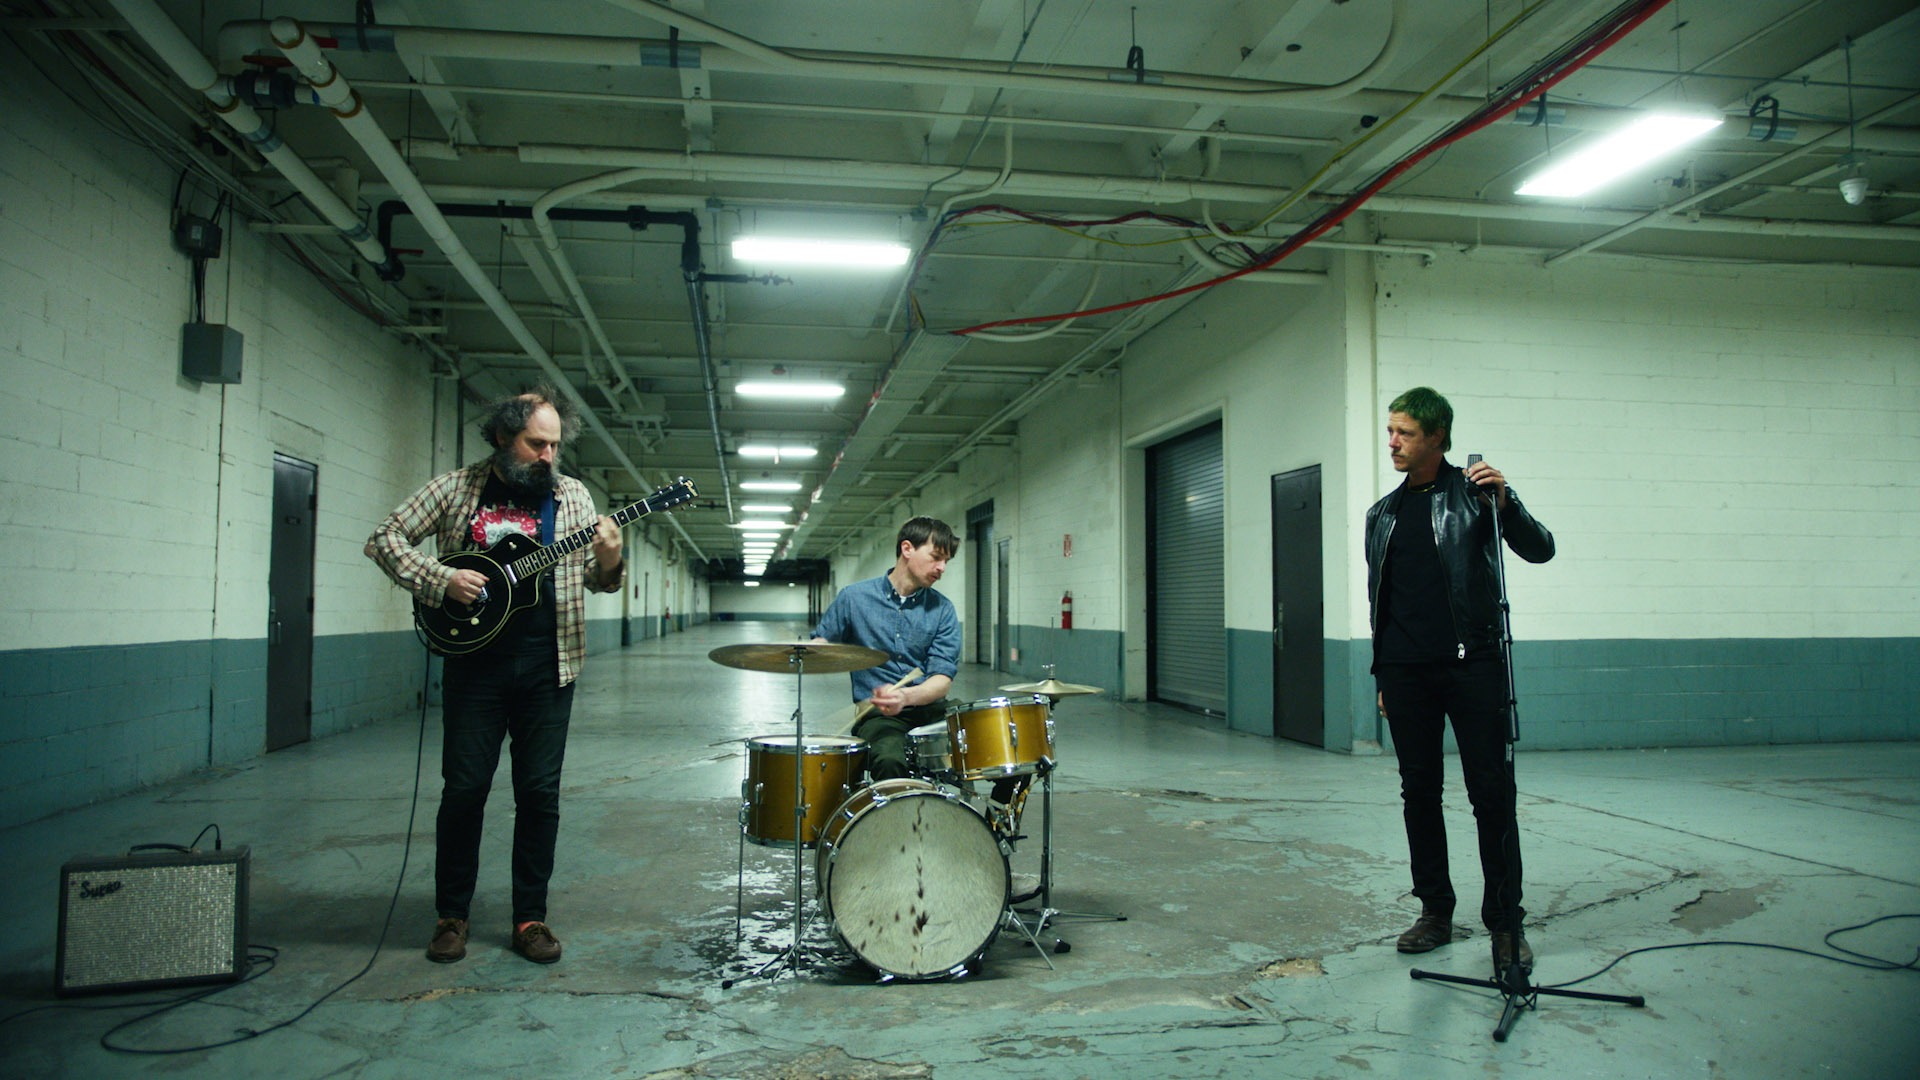 MUZZ unveil a new single/video 'Knuckleduster' - Watch Now